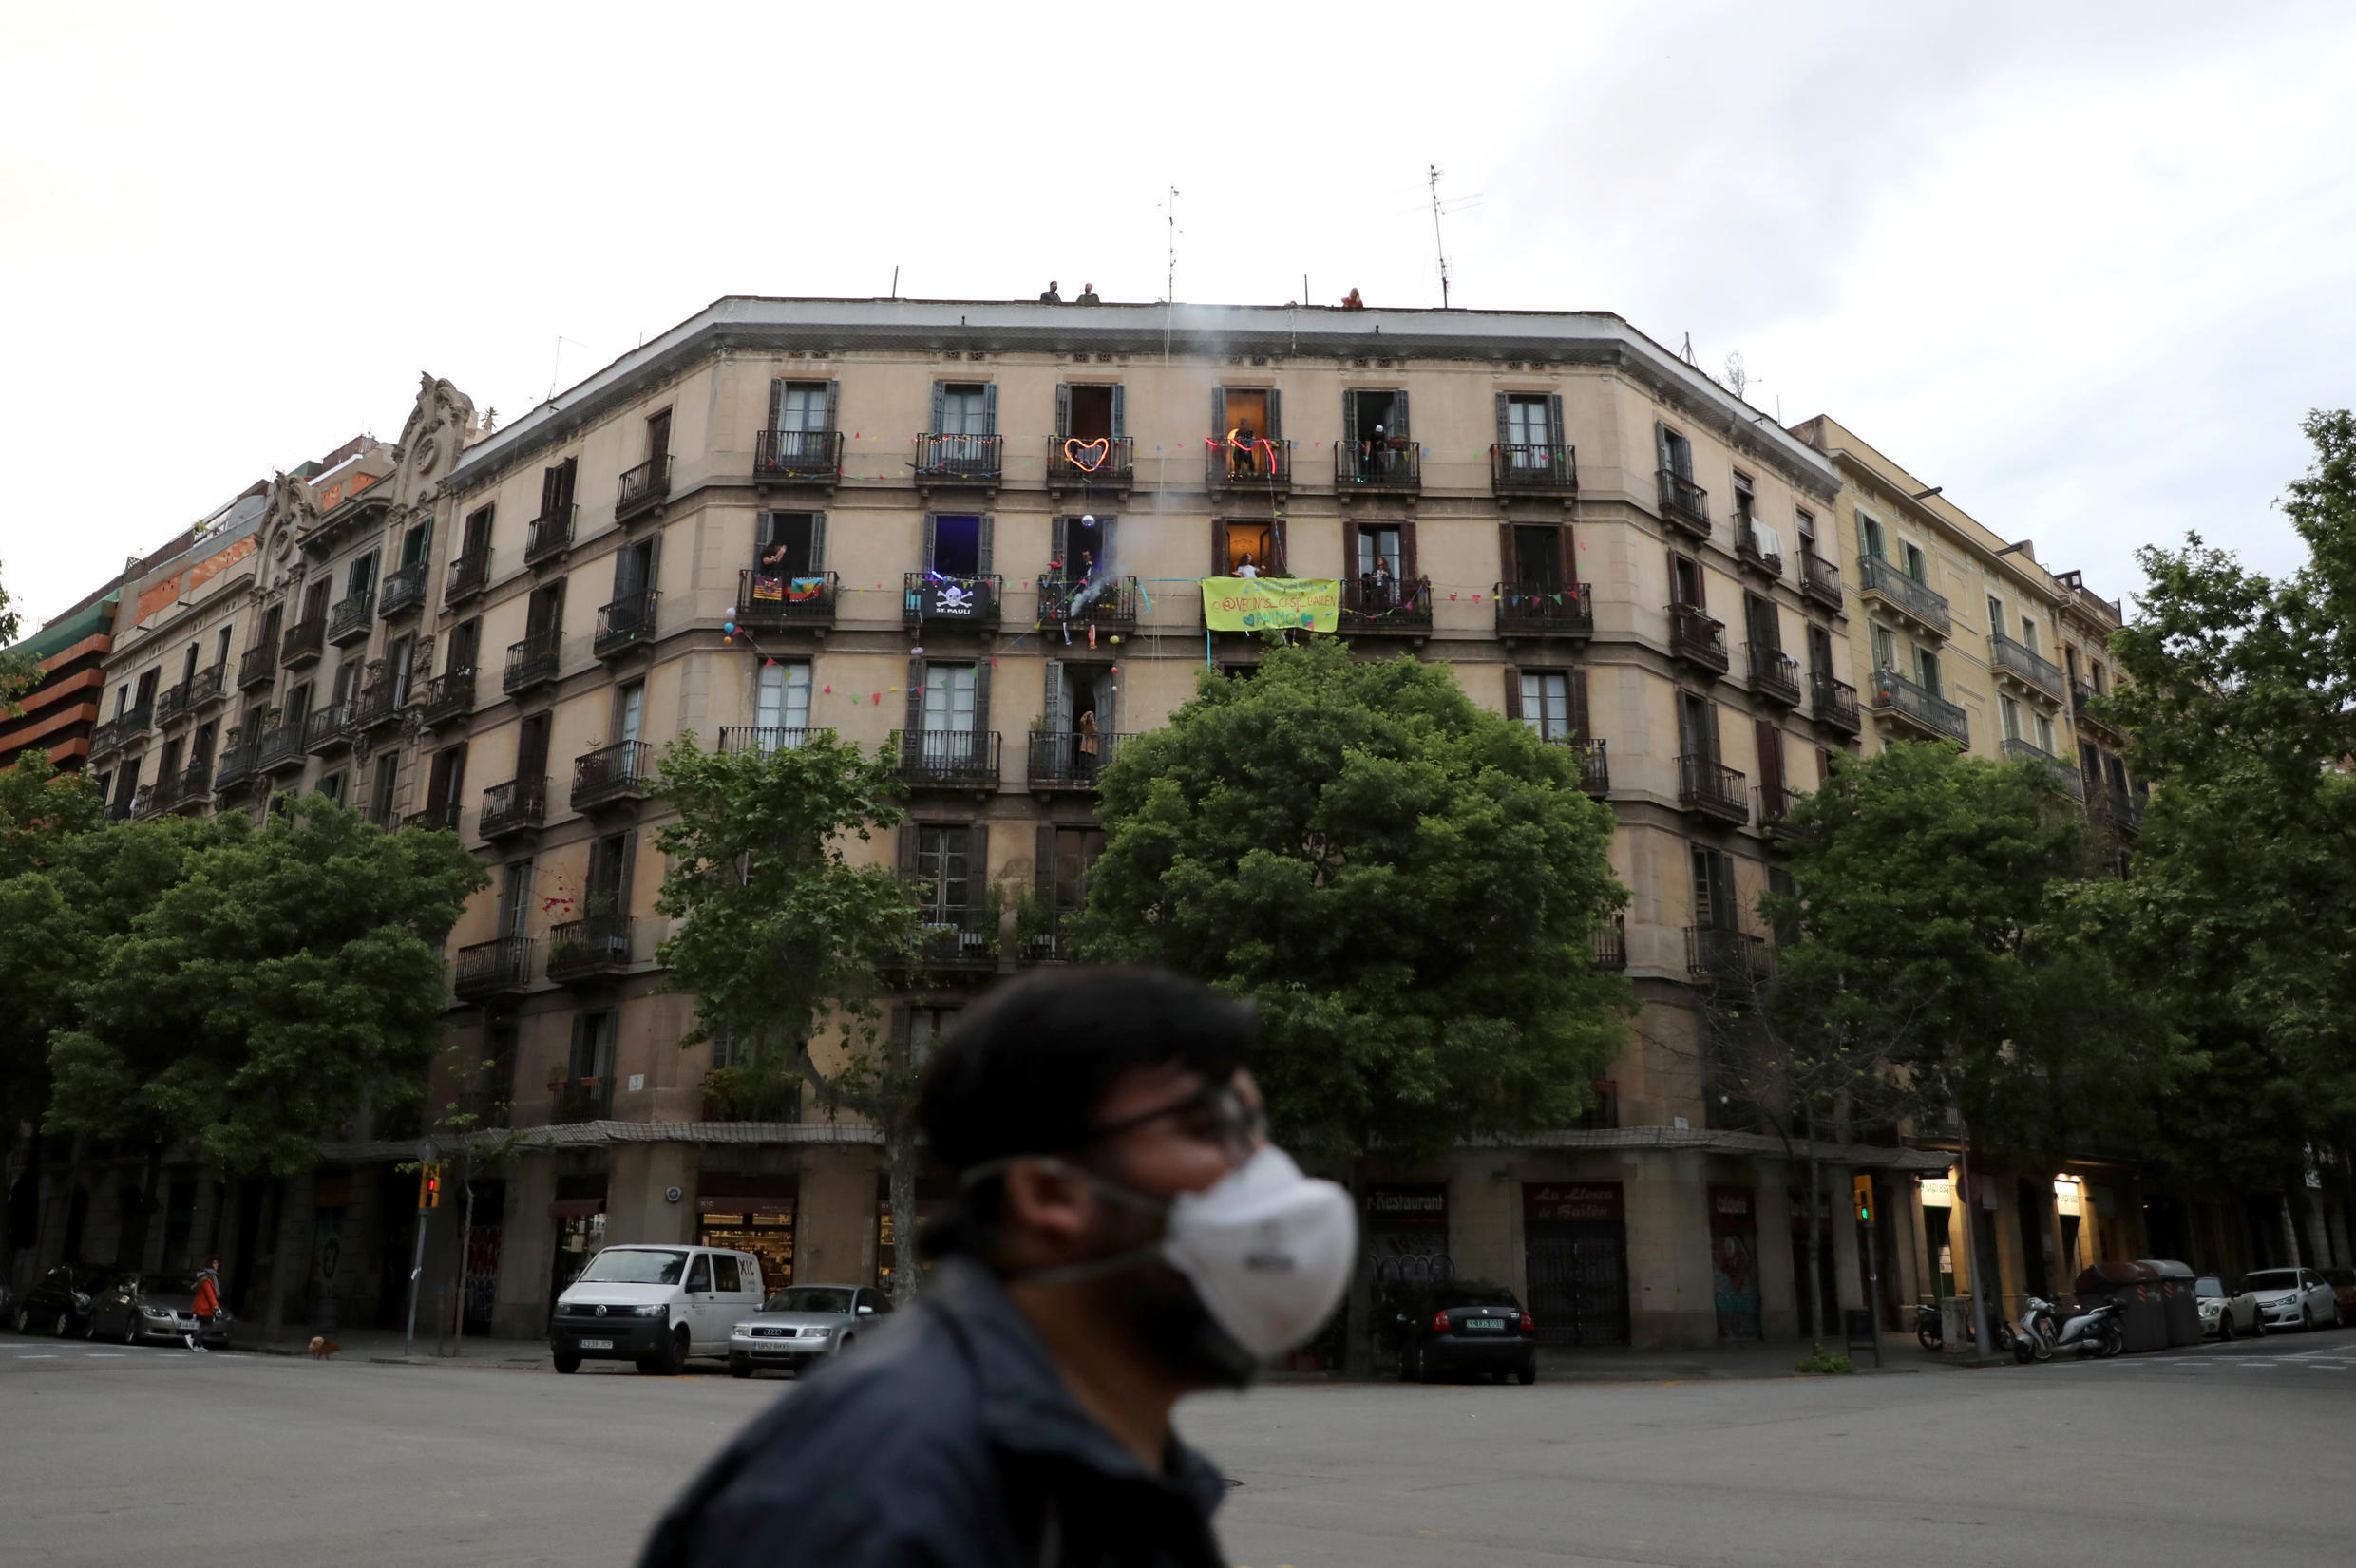 A man wearing a face mask walks in front of a building where neighbours confined in their homes dance on their balconies, amid the spread of the coronavirus disease (COVID-19), in Barcelona, Spain April 17, 2020.